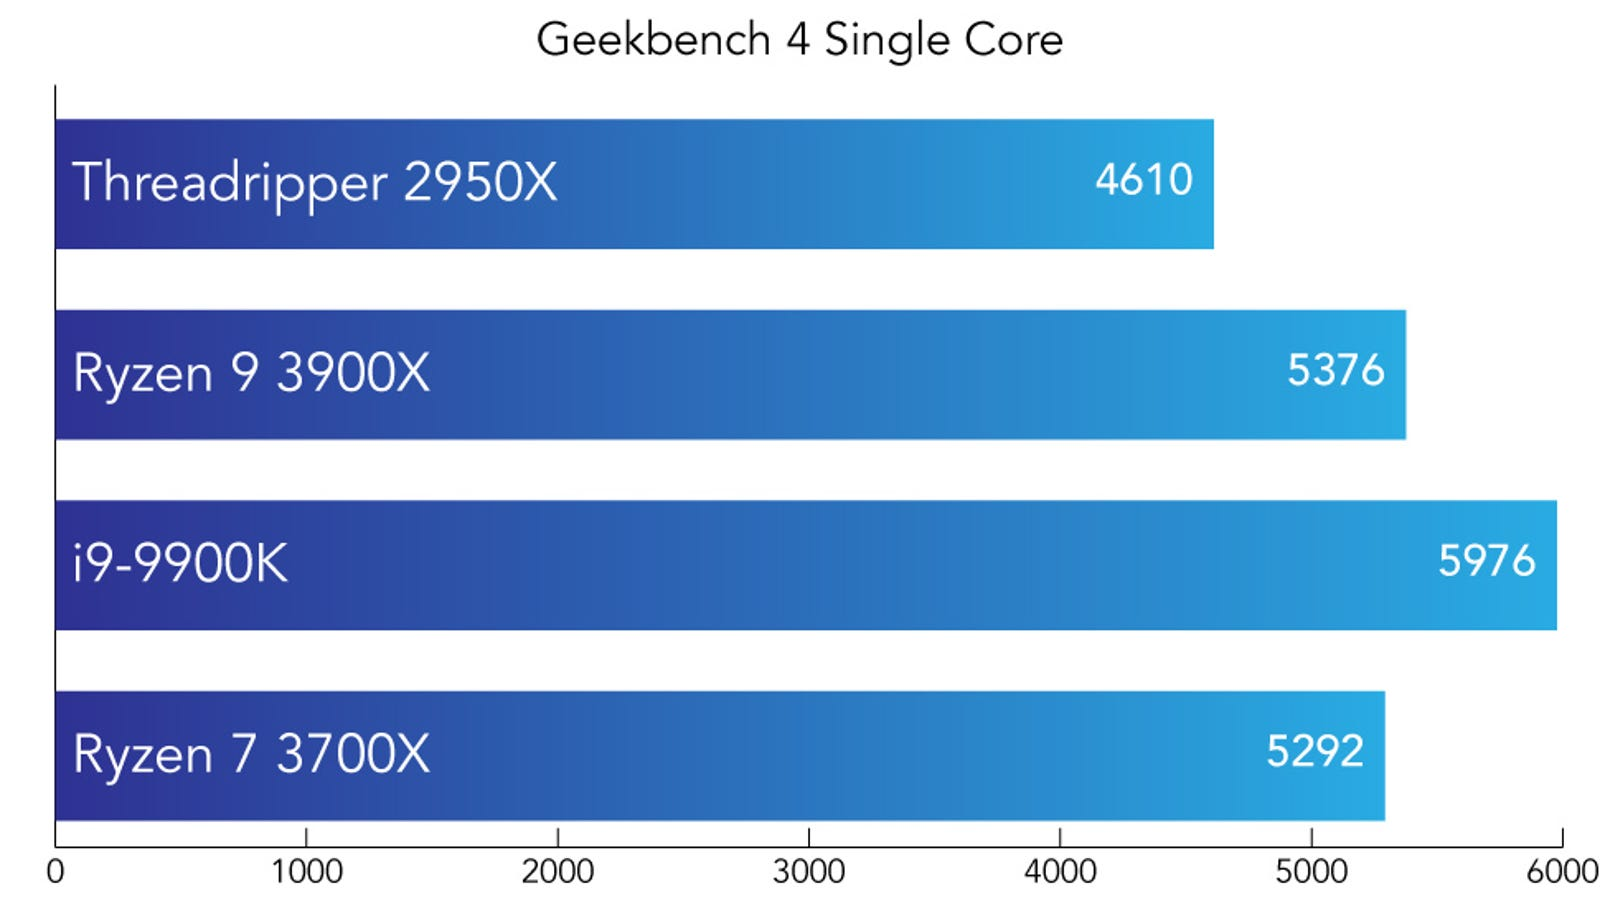 Geekbench 4 is a synthetic benchmark. A higher score is better.